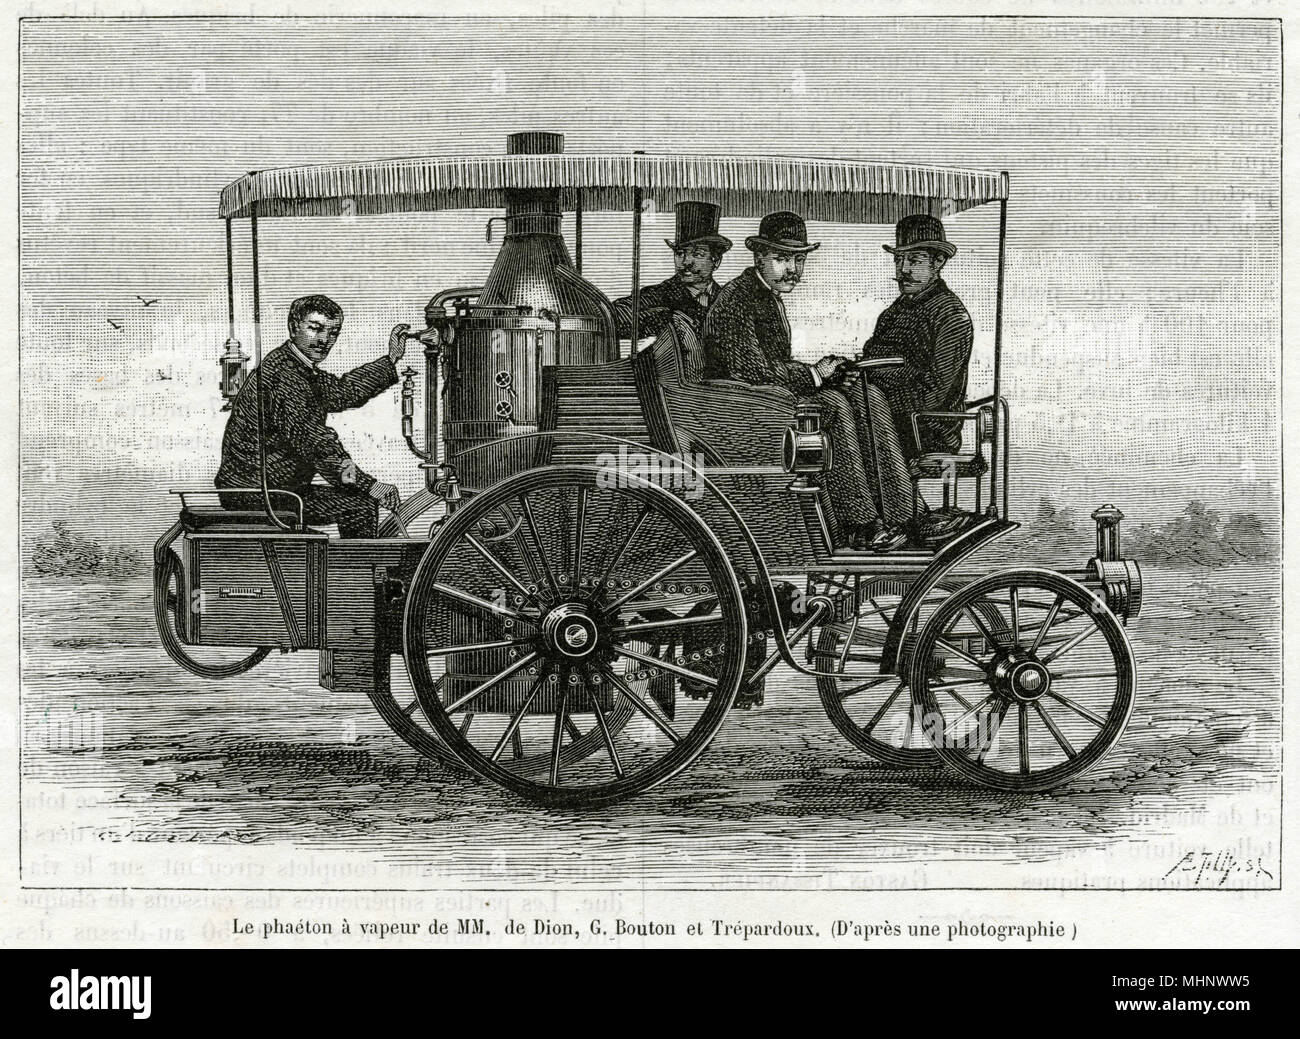 De Dion-Bouton was a French automobile manufacturer, here is one of thier inventions in August 1884.     Date: August 1884 - Stock Image